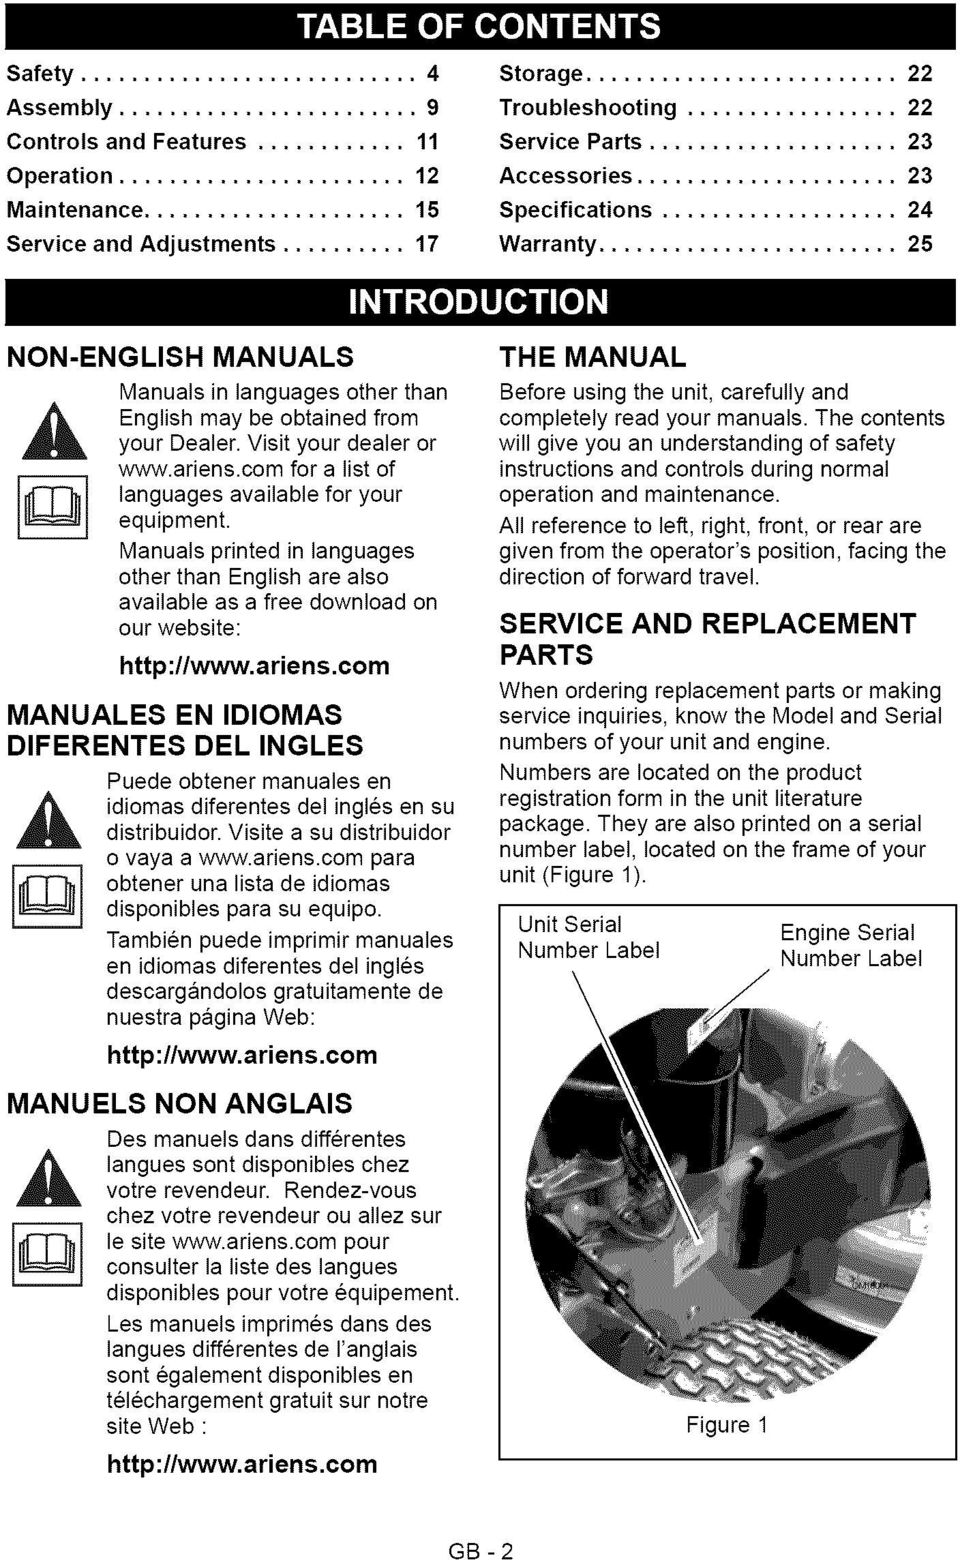 ariens.com for a list of languages available for your equipment. Manuals printed in languages other than English are also available as a free download on our website: http://www.ariens.com MANUALES EN IDIOMAS DIFERENTES DEL INGLES Puede obtener manuales en,_ idiomas distribuidor.